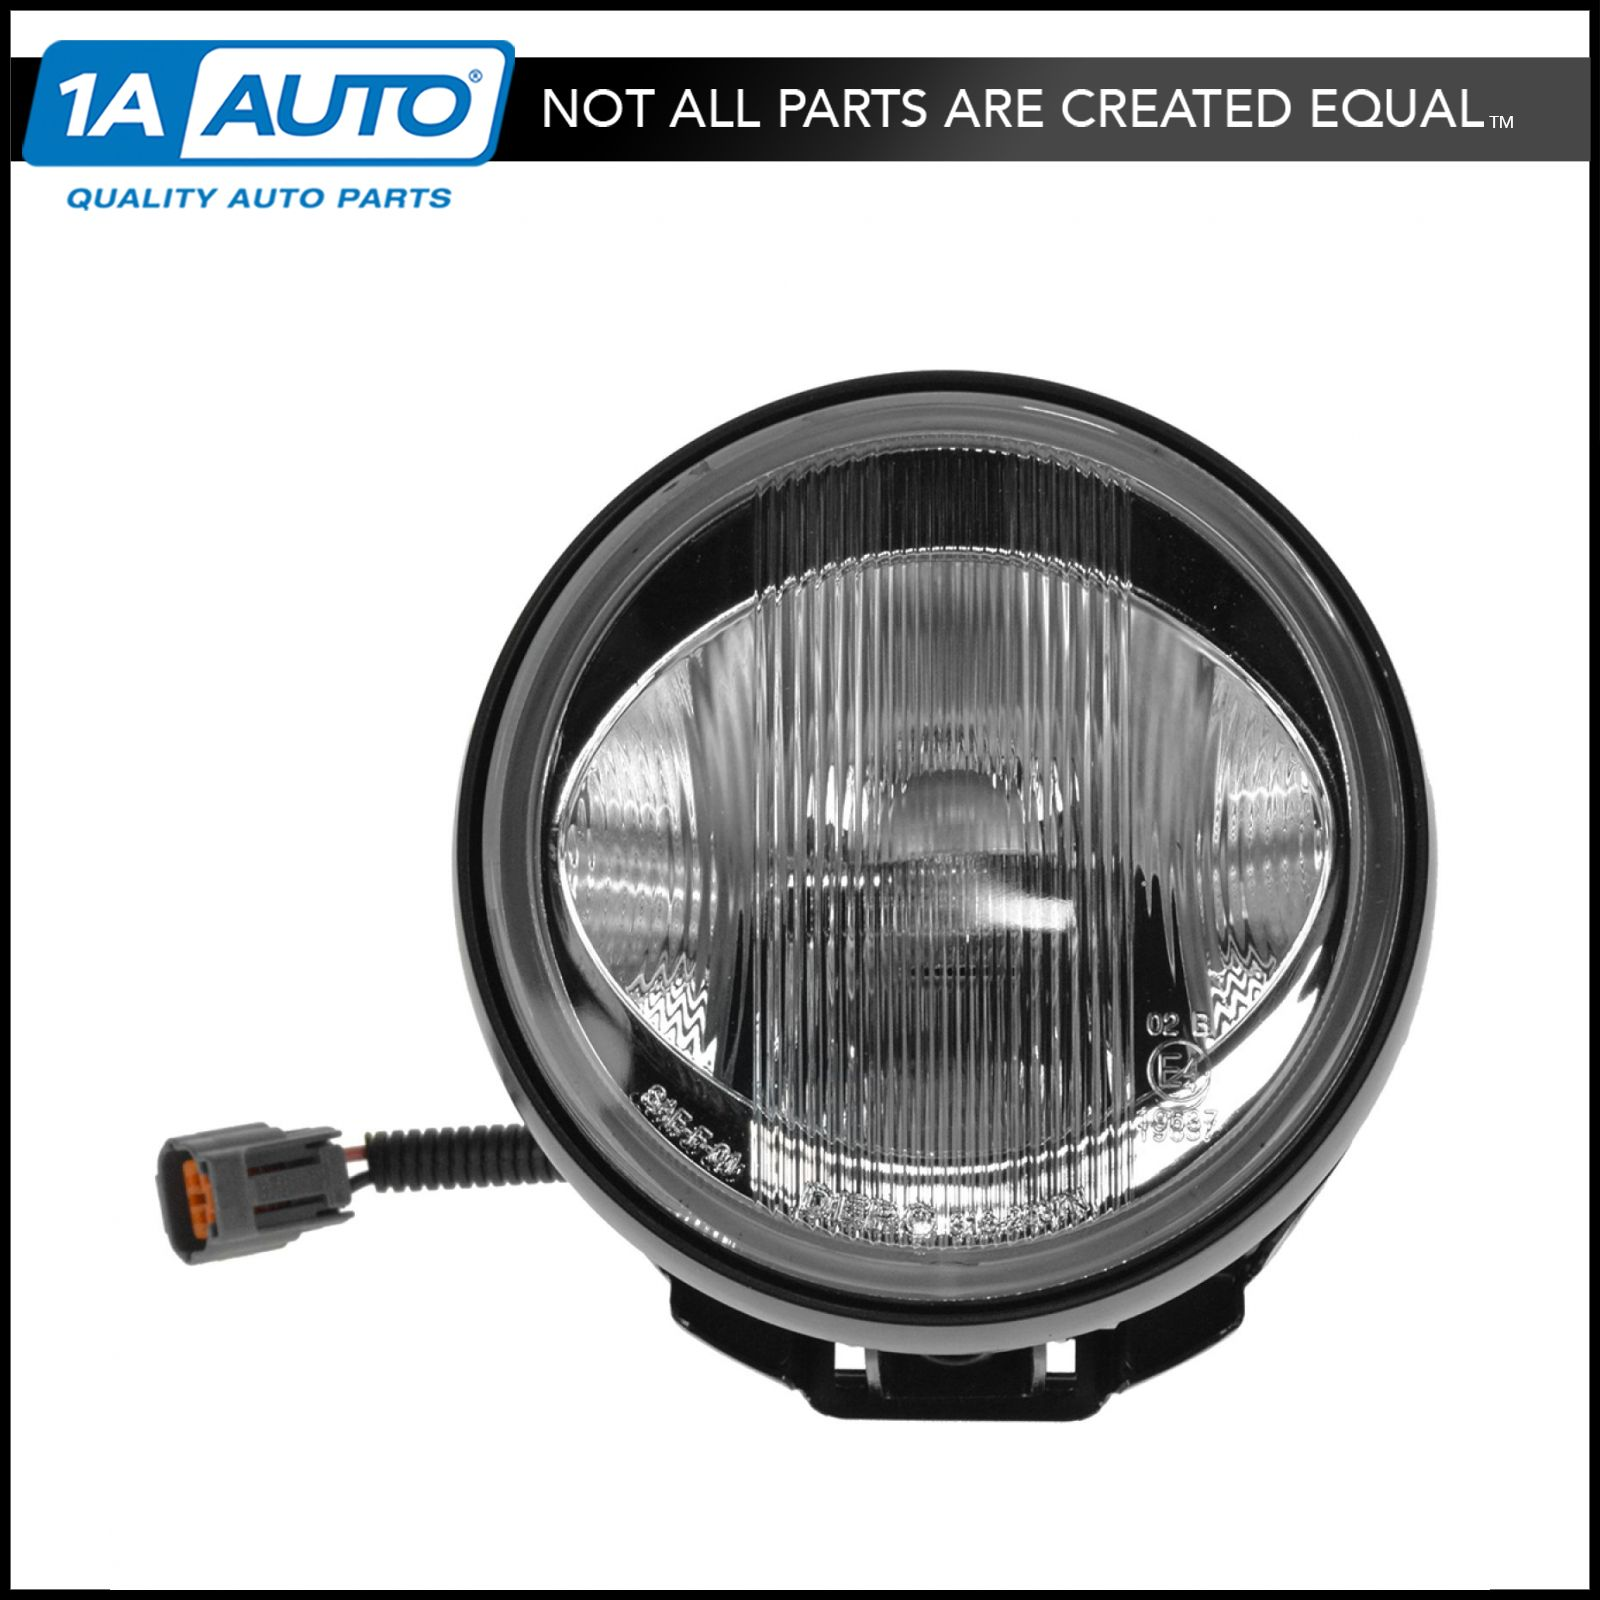 New Replacement Taillight Lamp Assembly LH FOR 2002-03 MAZDA PROTEGE HATCHBACK